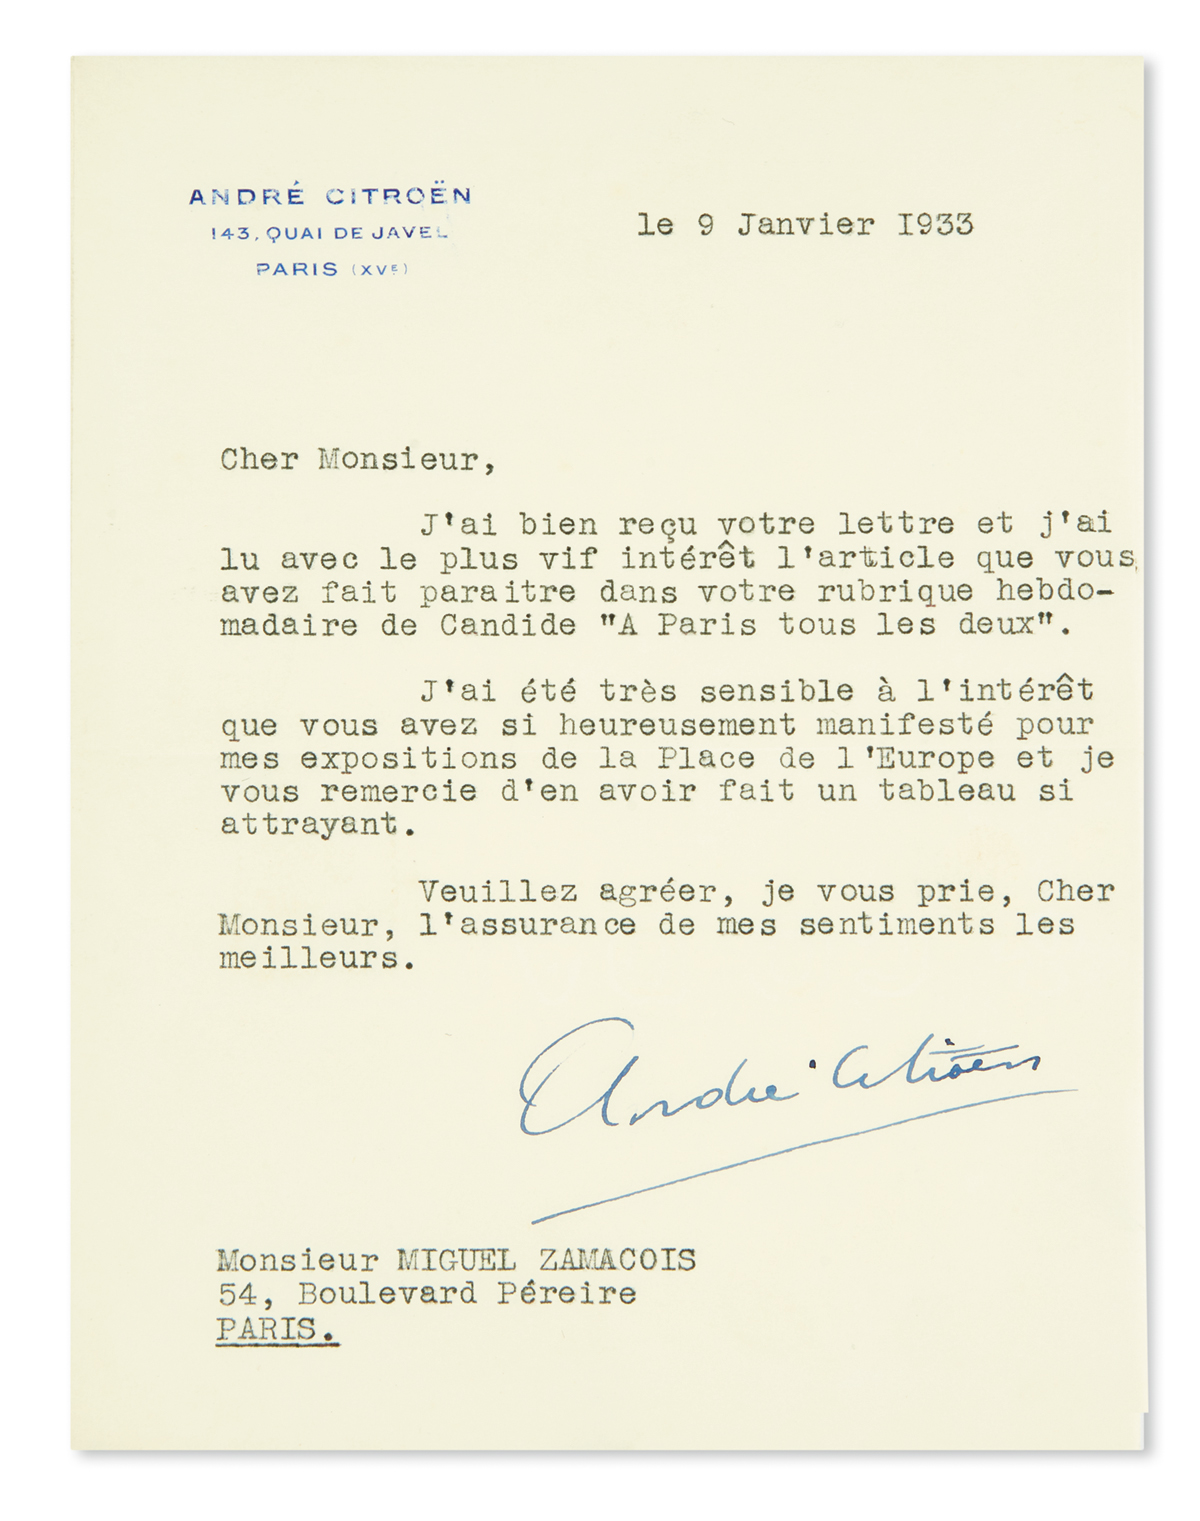 (BUSINESS)-CITROËN-ANDRÉ-Typed-Letter-Signed-to-journalist-a